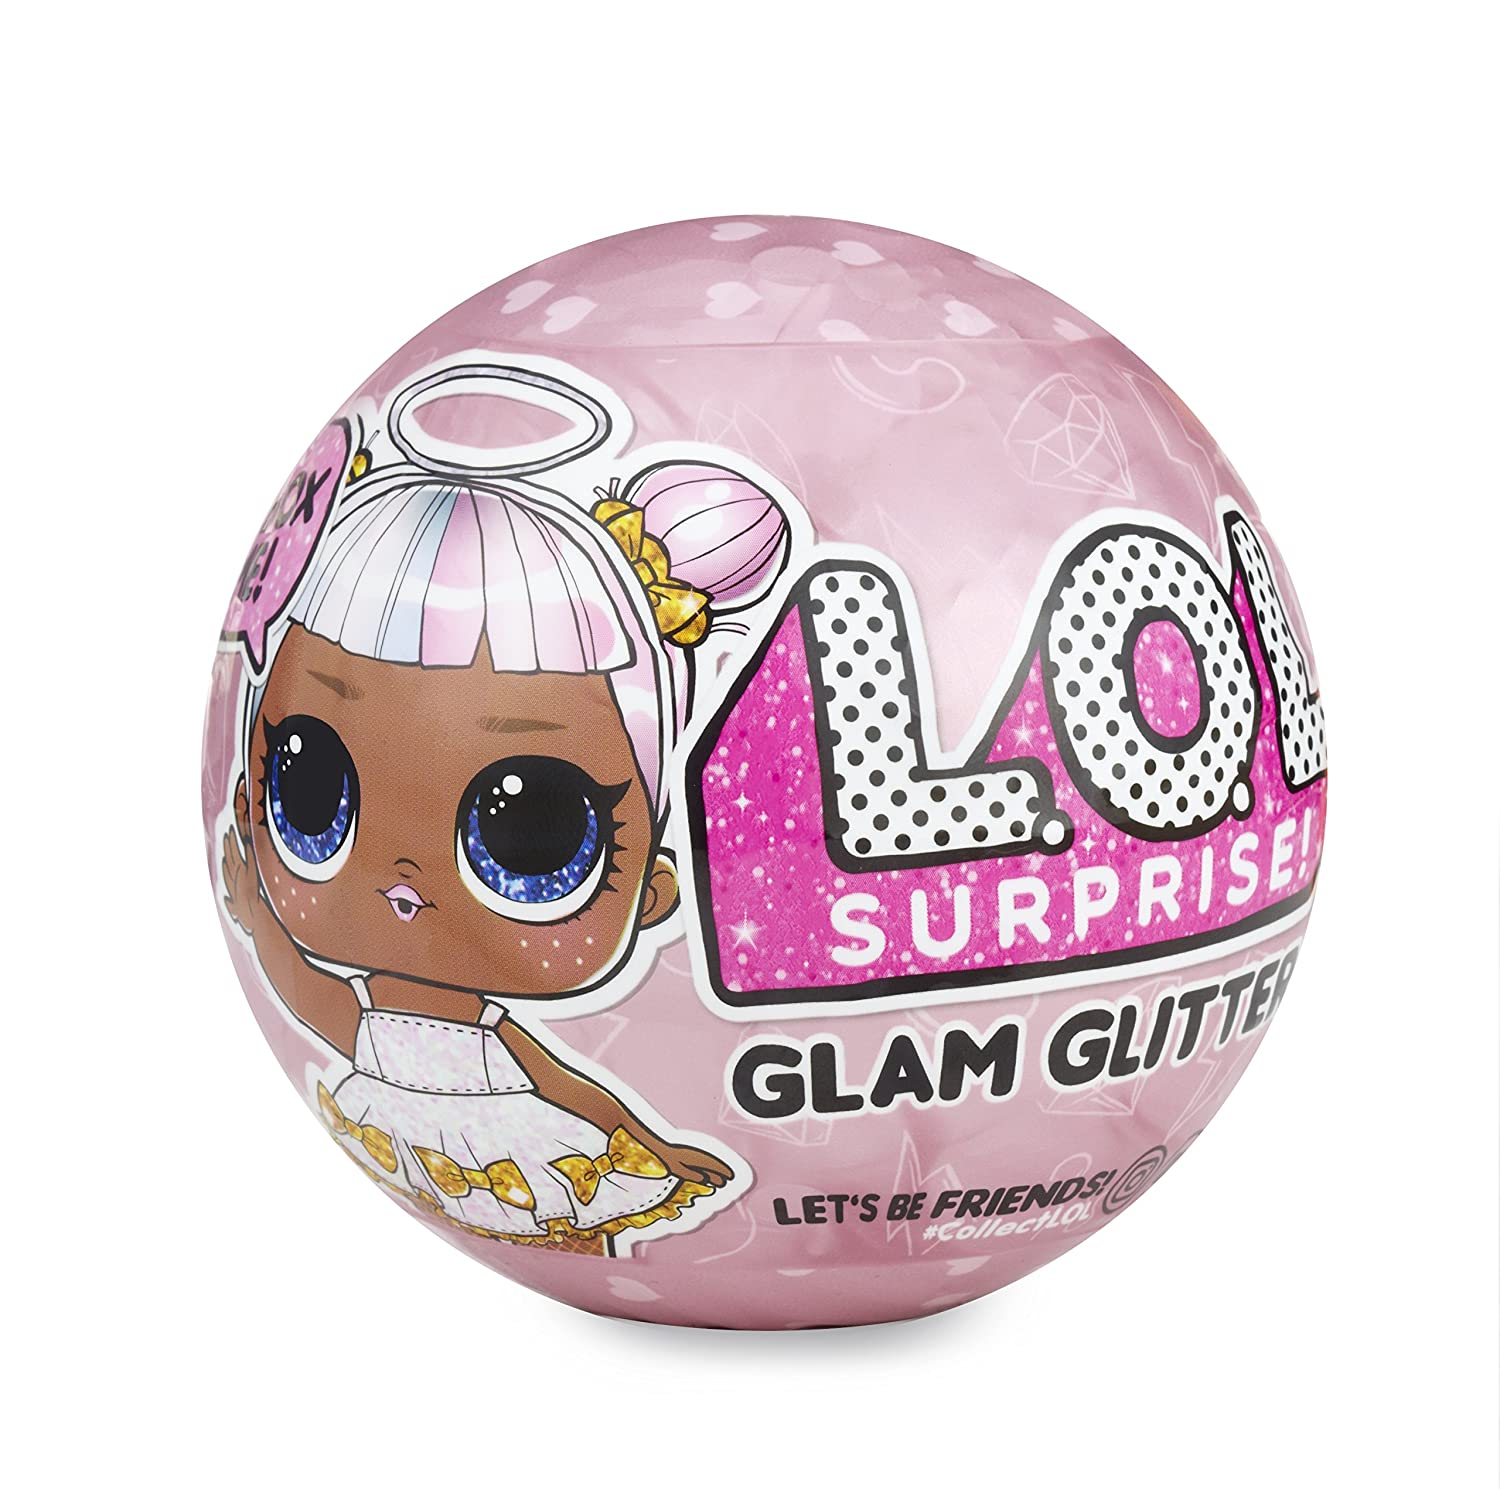 L.O.L. Surprise! Glam Glitter Series Doll MGA Entertainment 555605